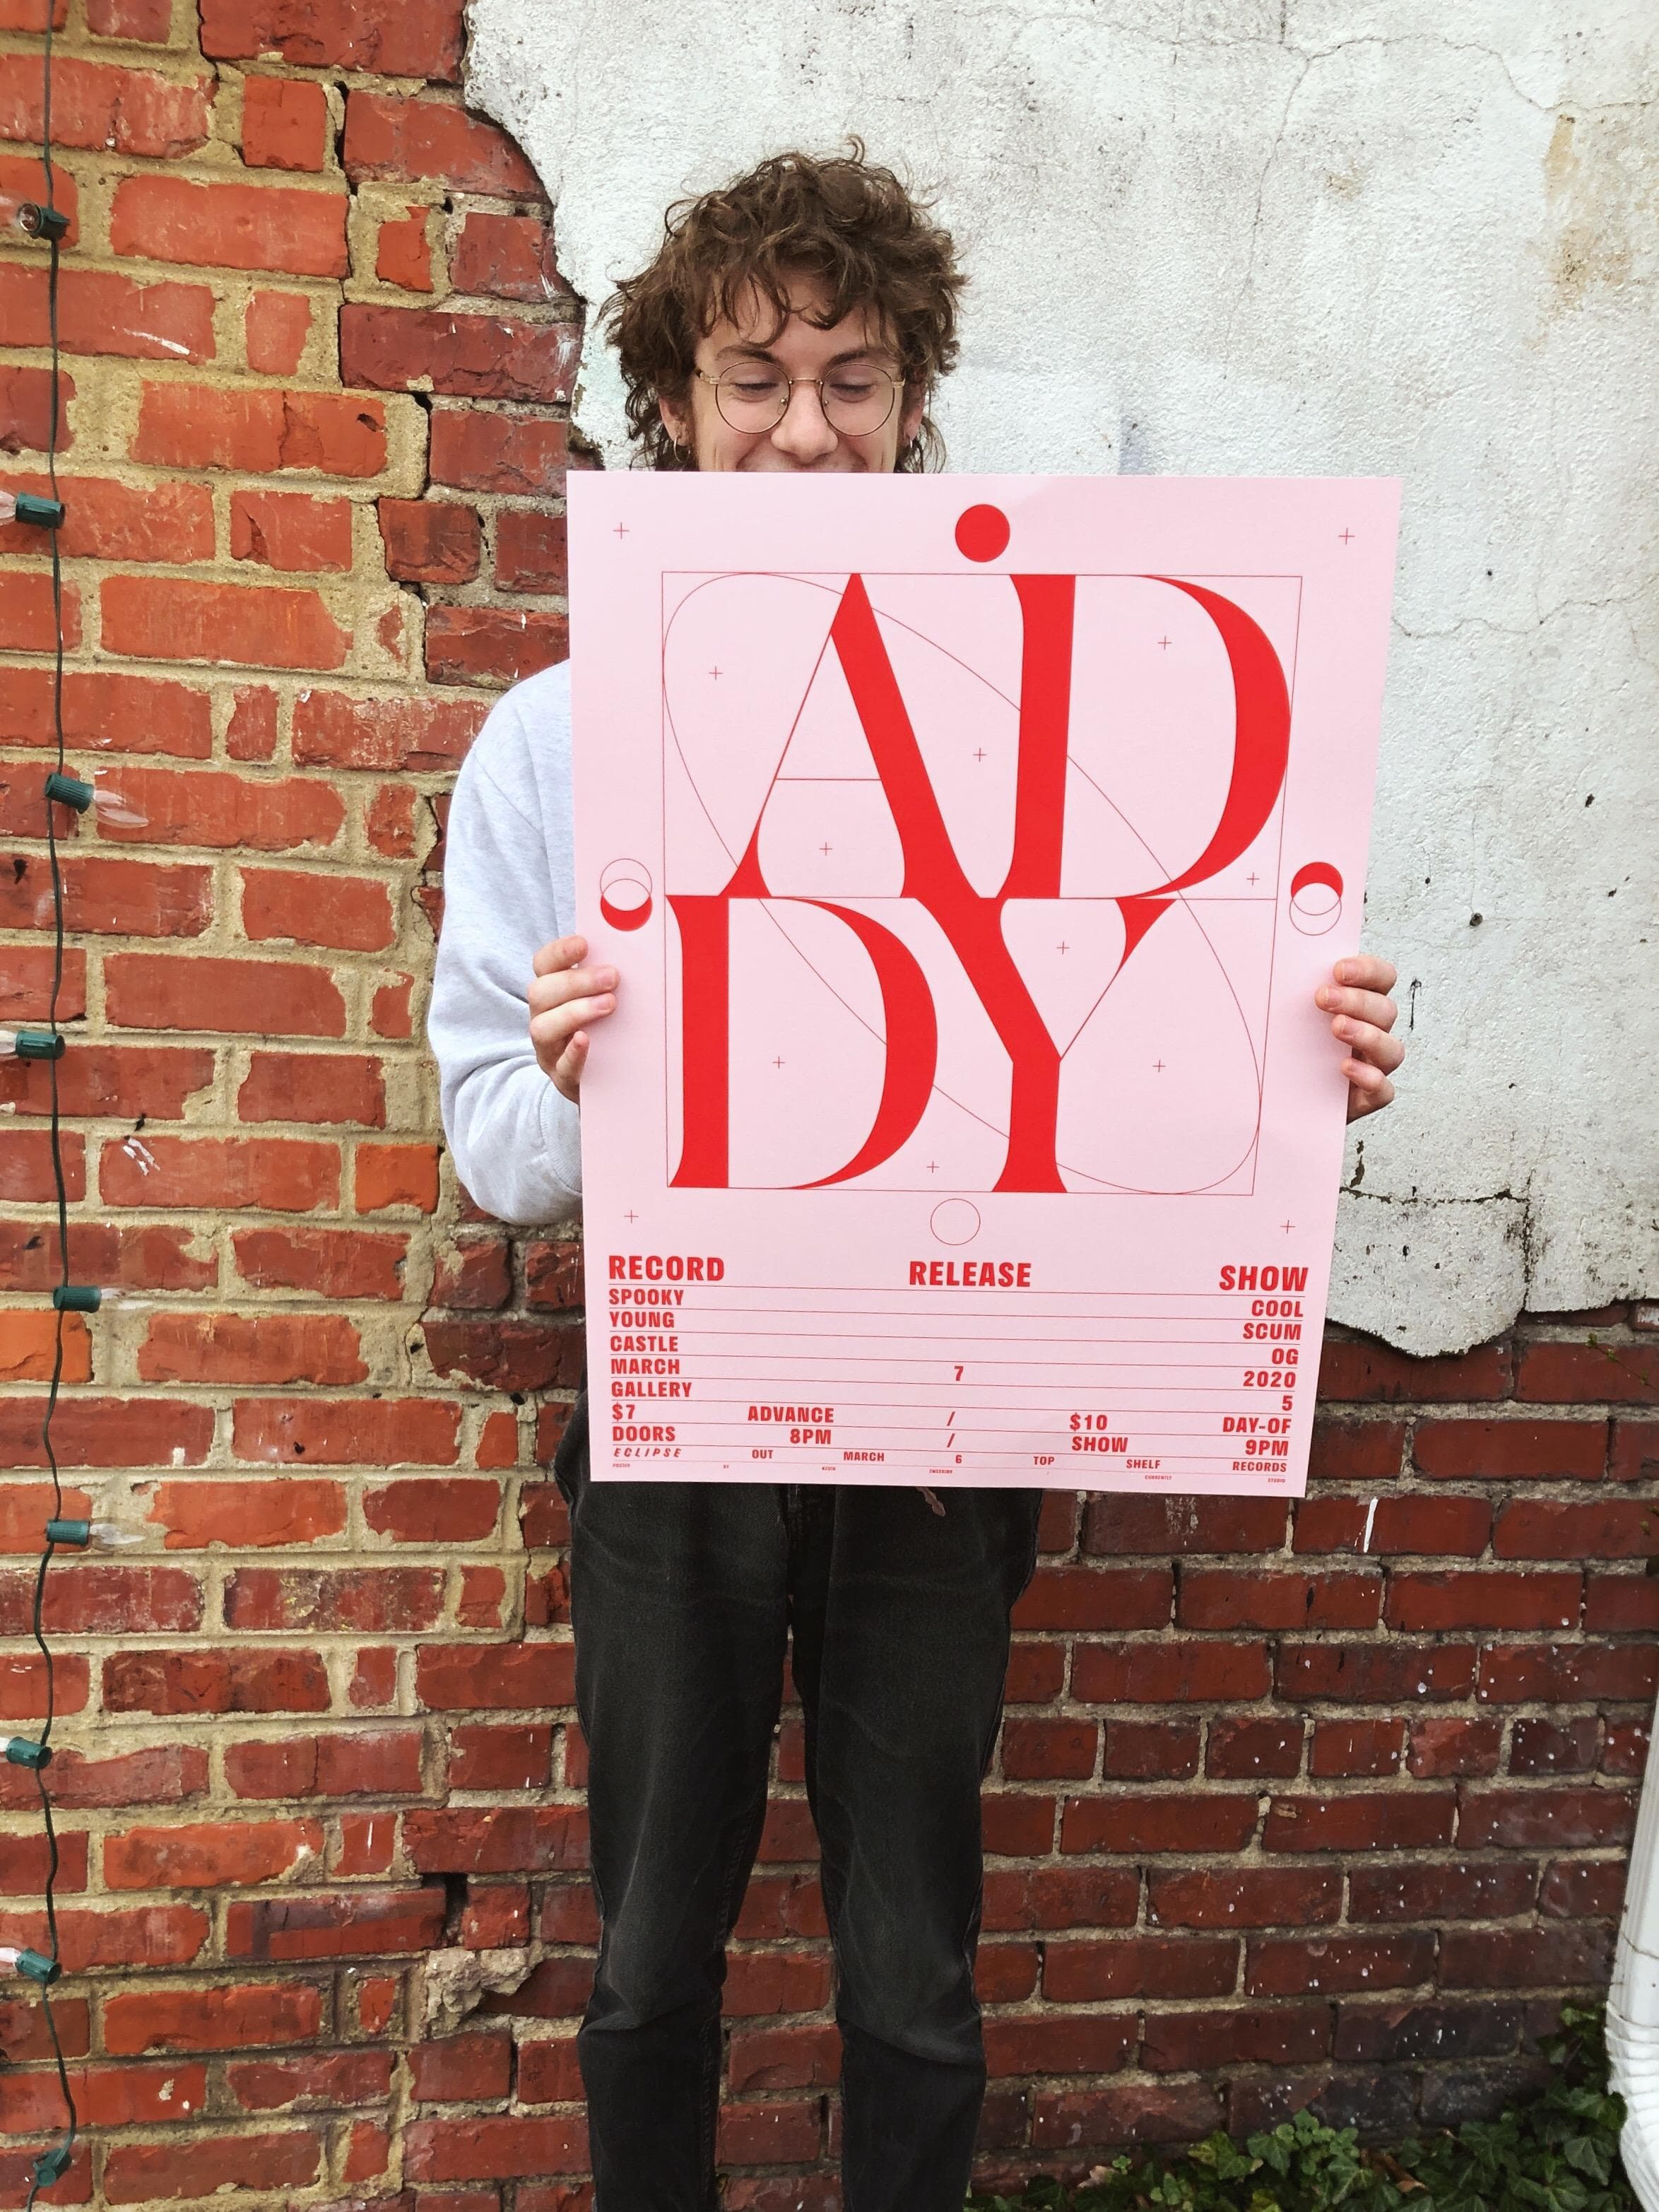 Addy holding the poster for their record release show